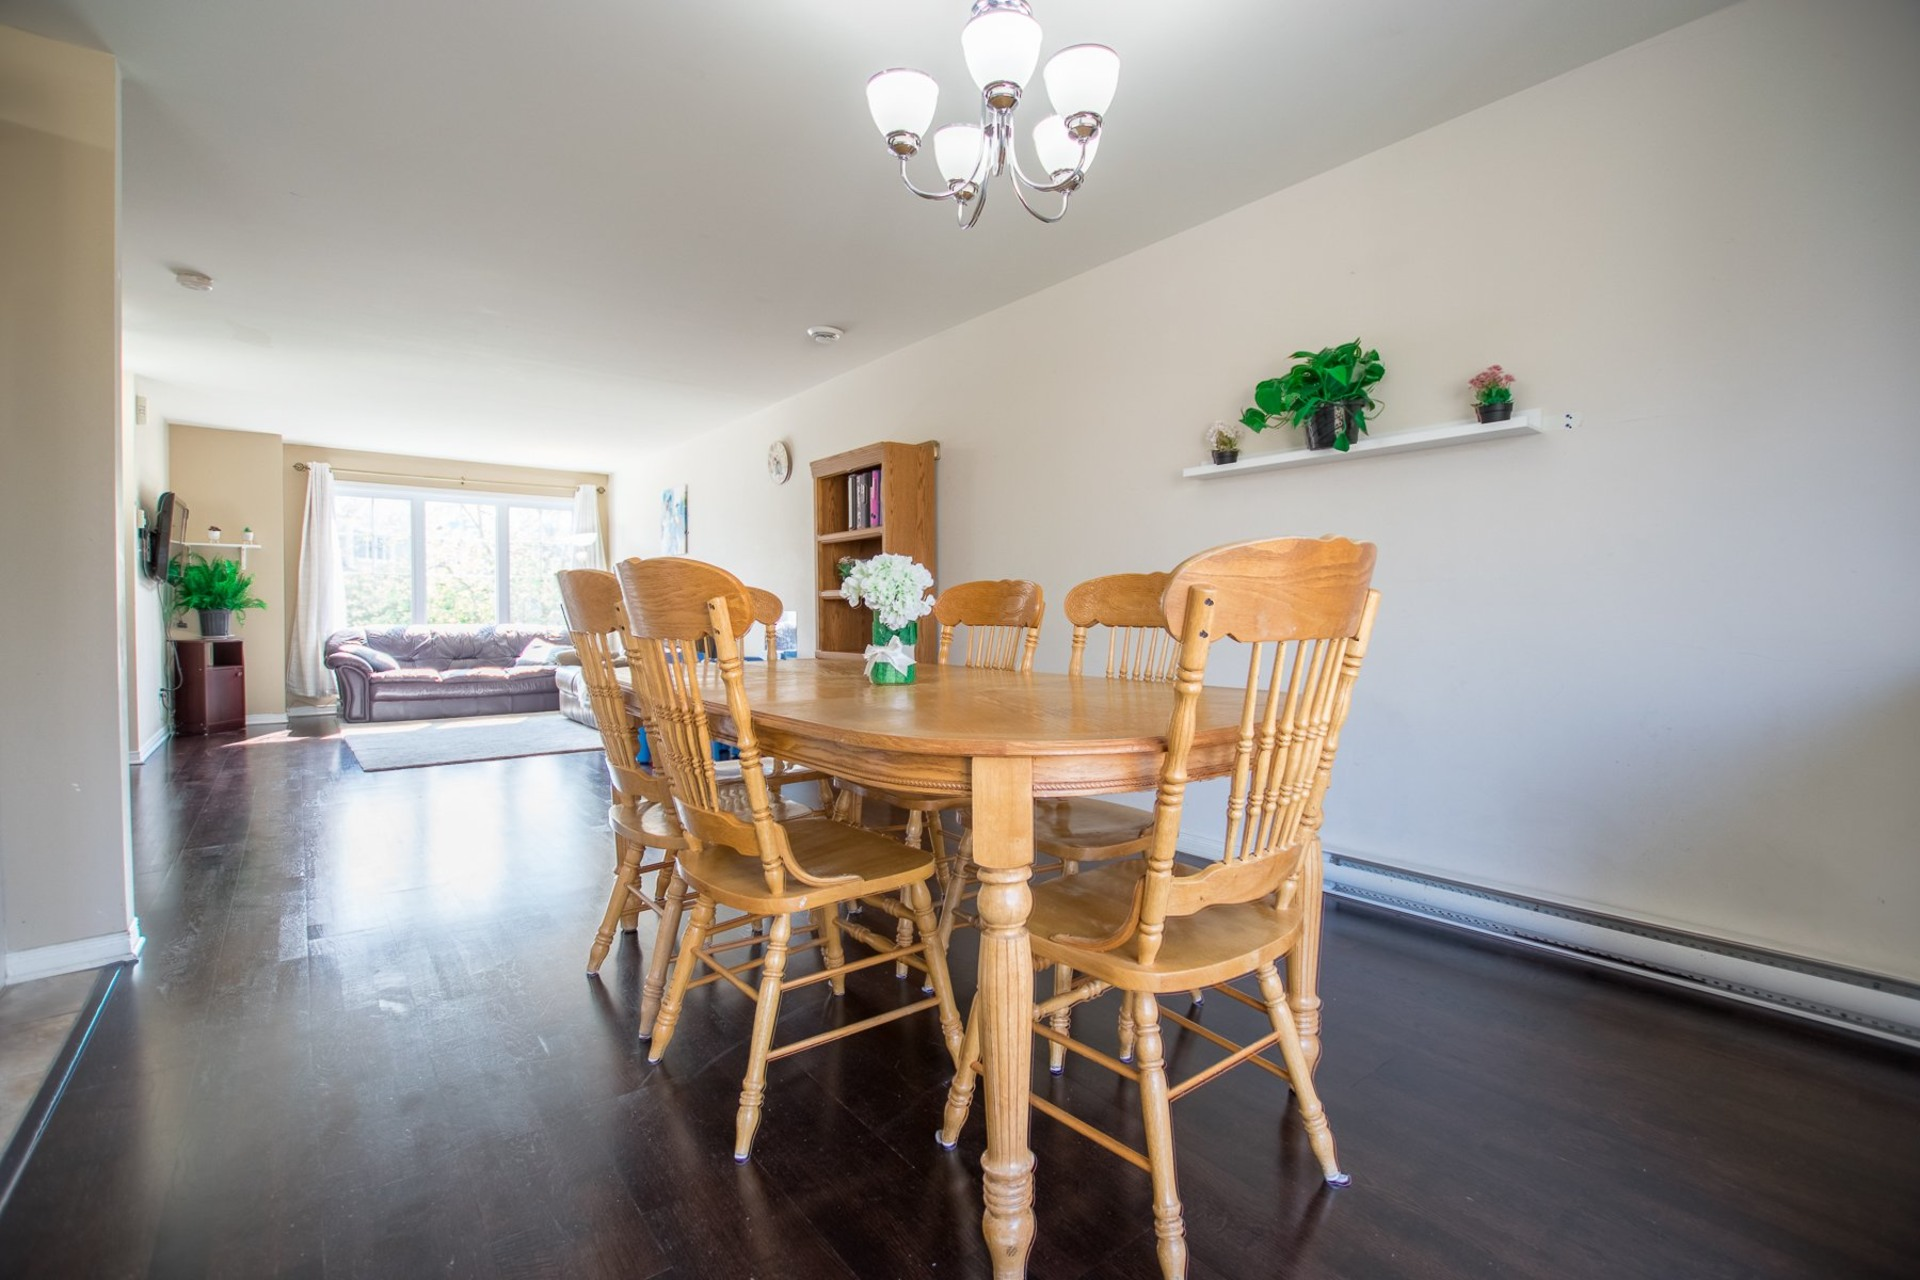 image 5 - Apartment For sale Châteauguay - 8 rooms